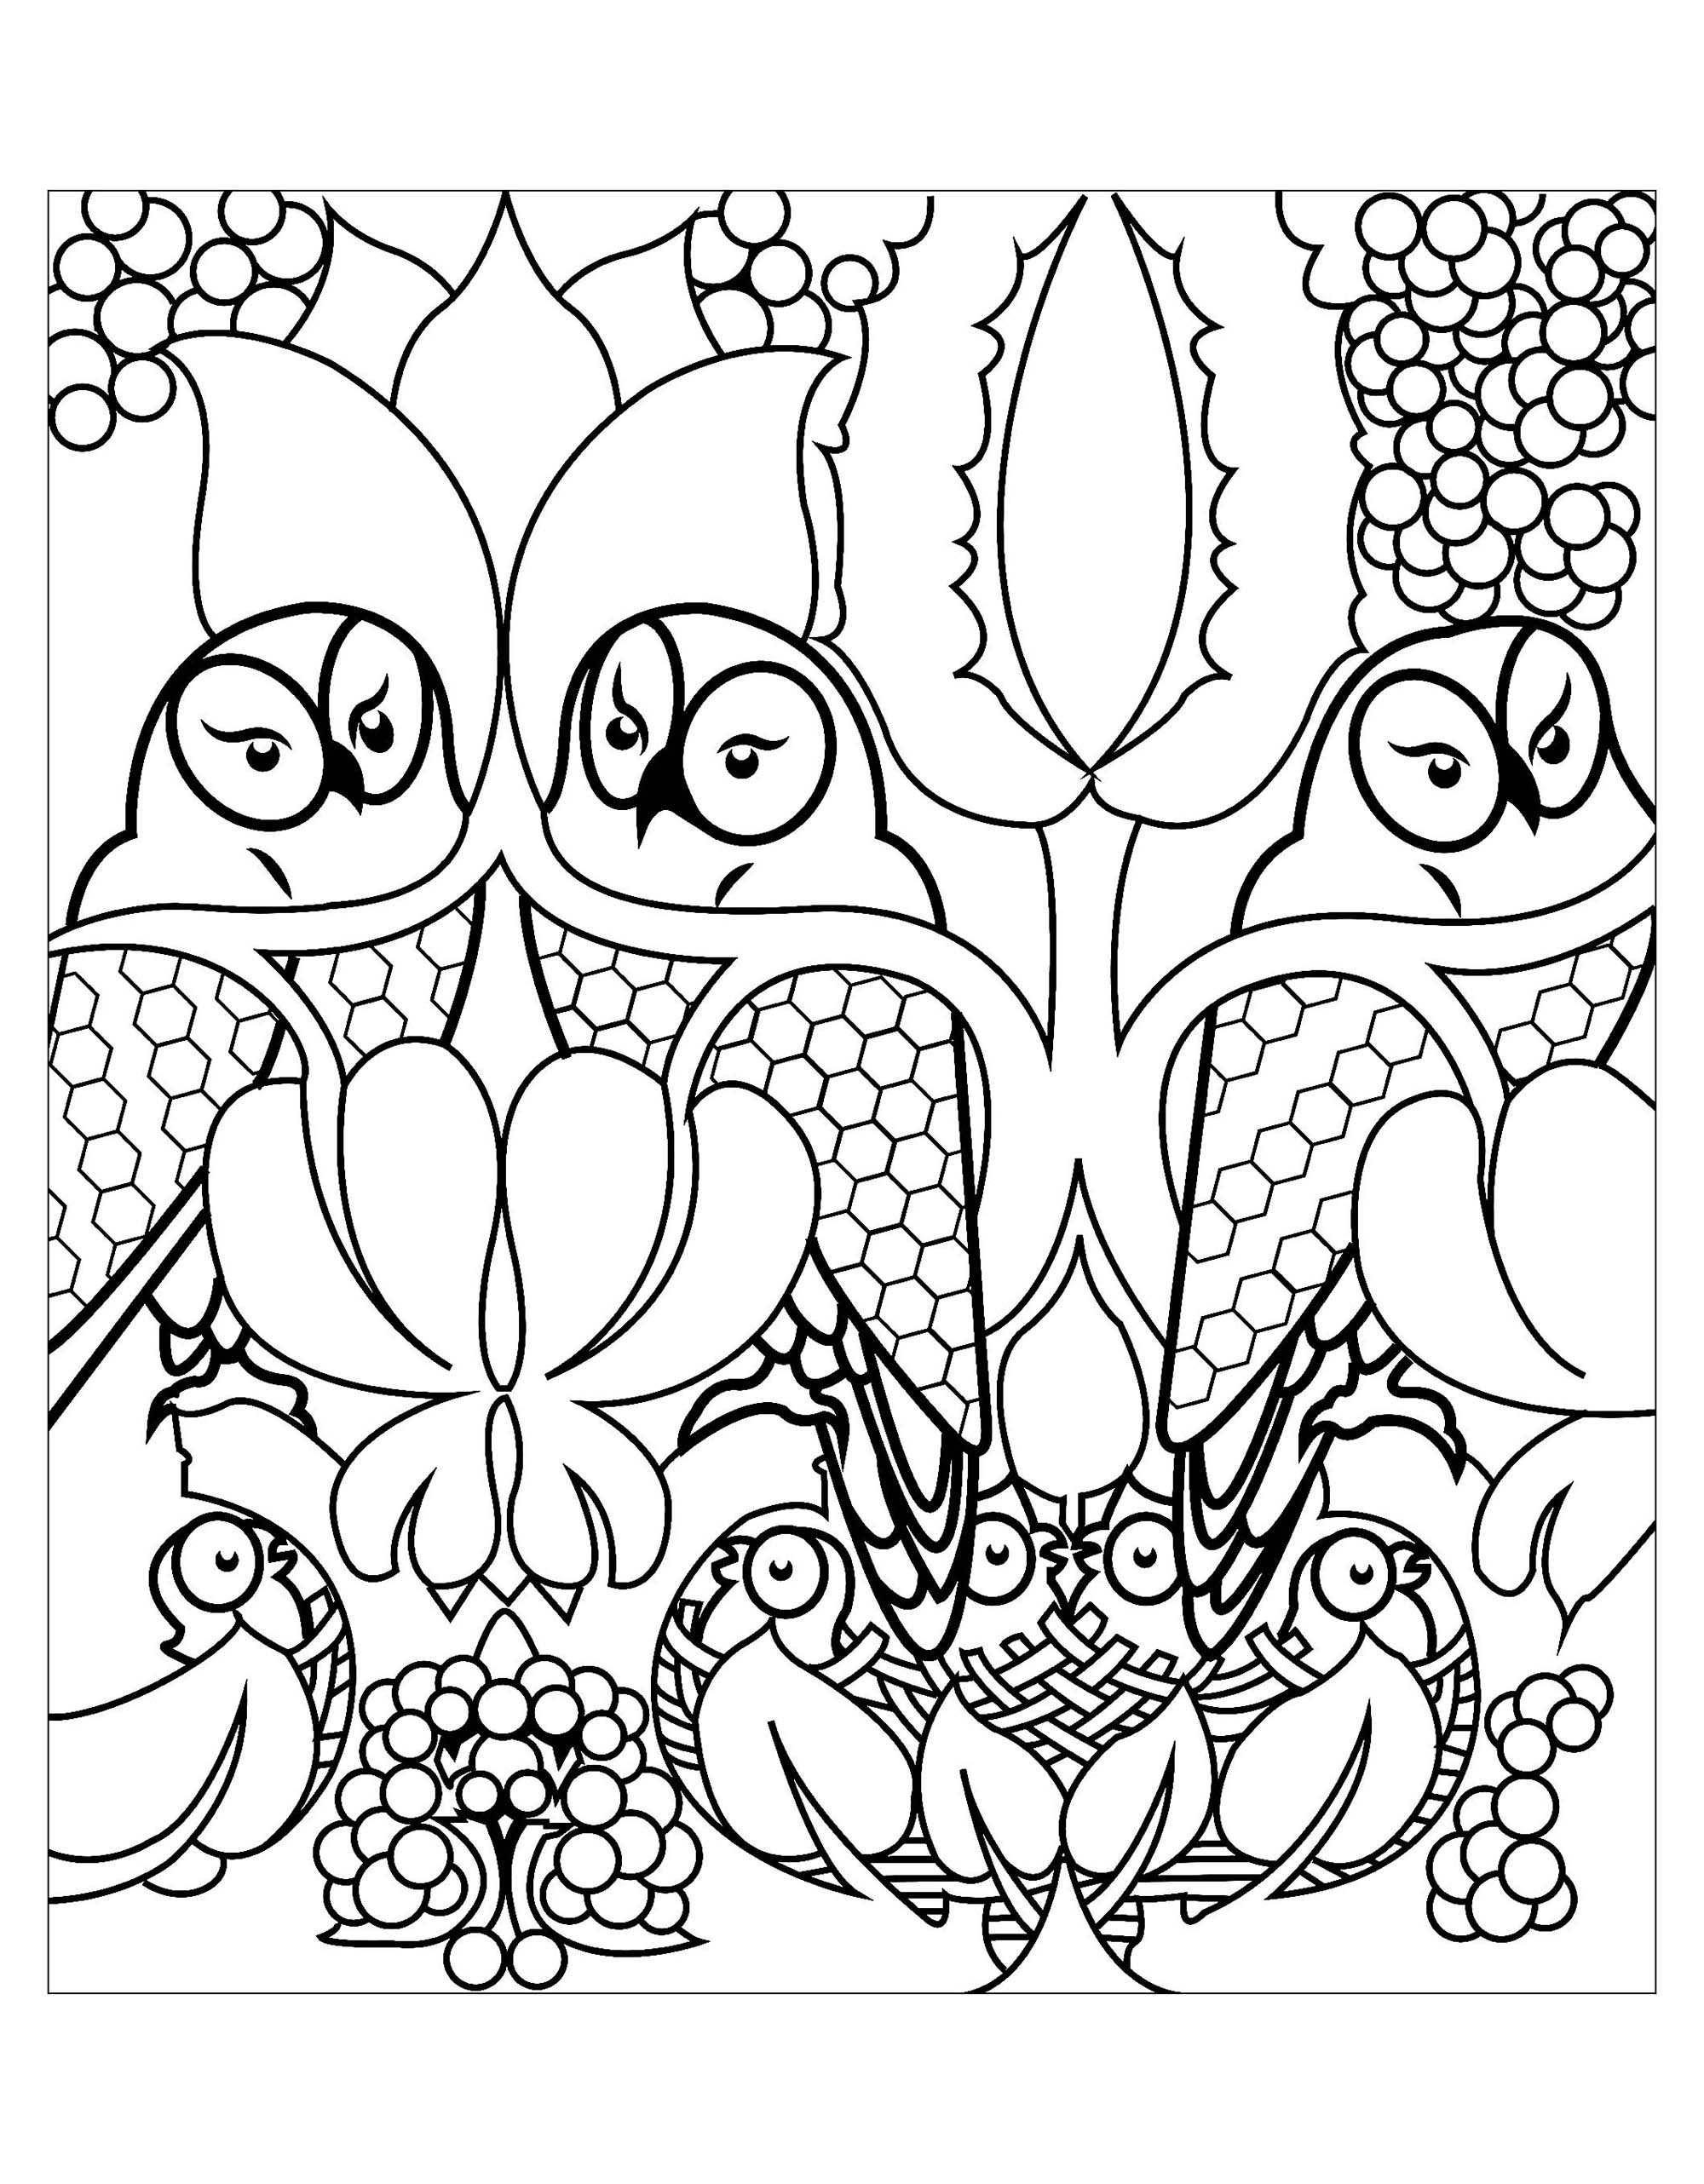 Owls free to color for kids - Owls - Free printable Coloring pages ...